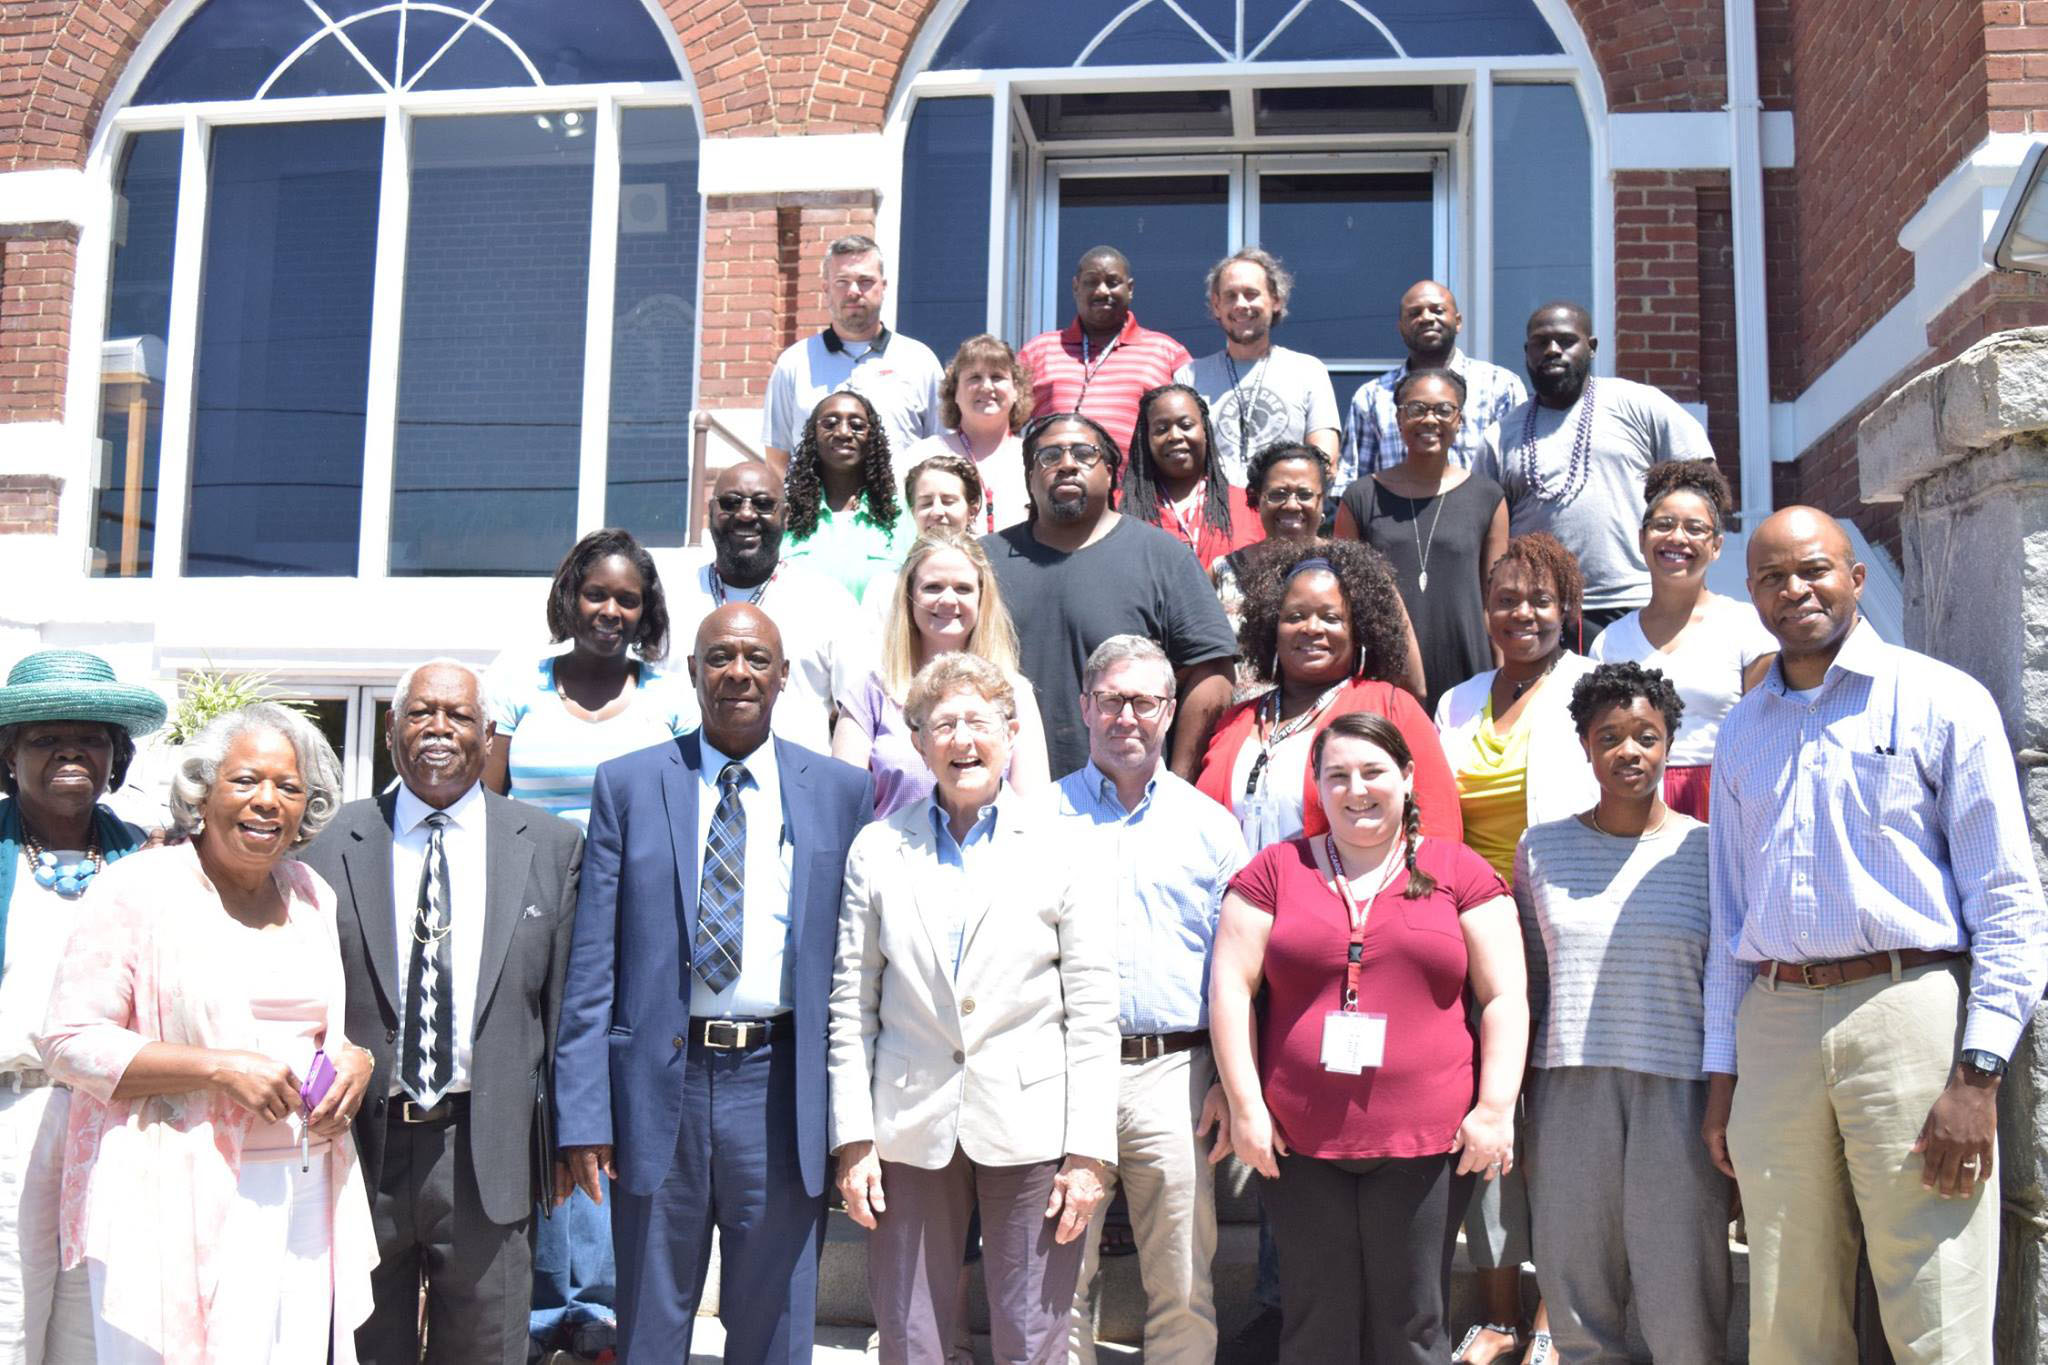 Civil rights teacher institute participants and leders